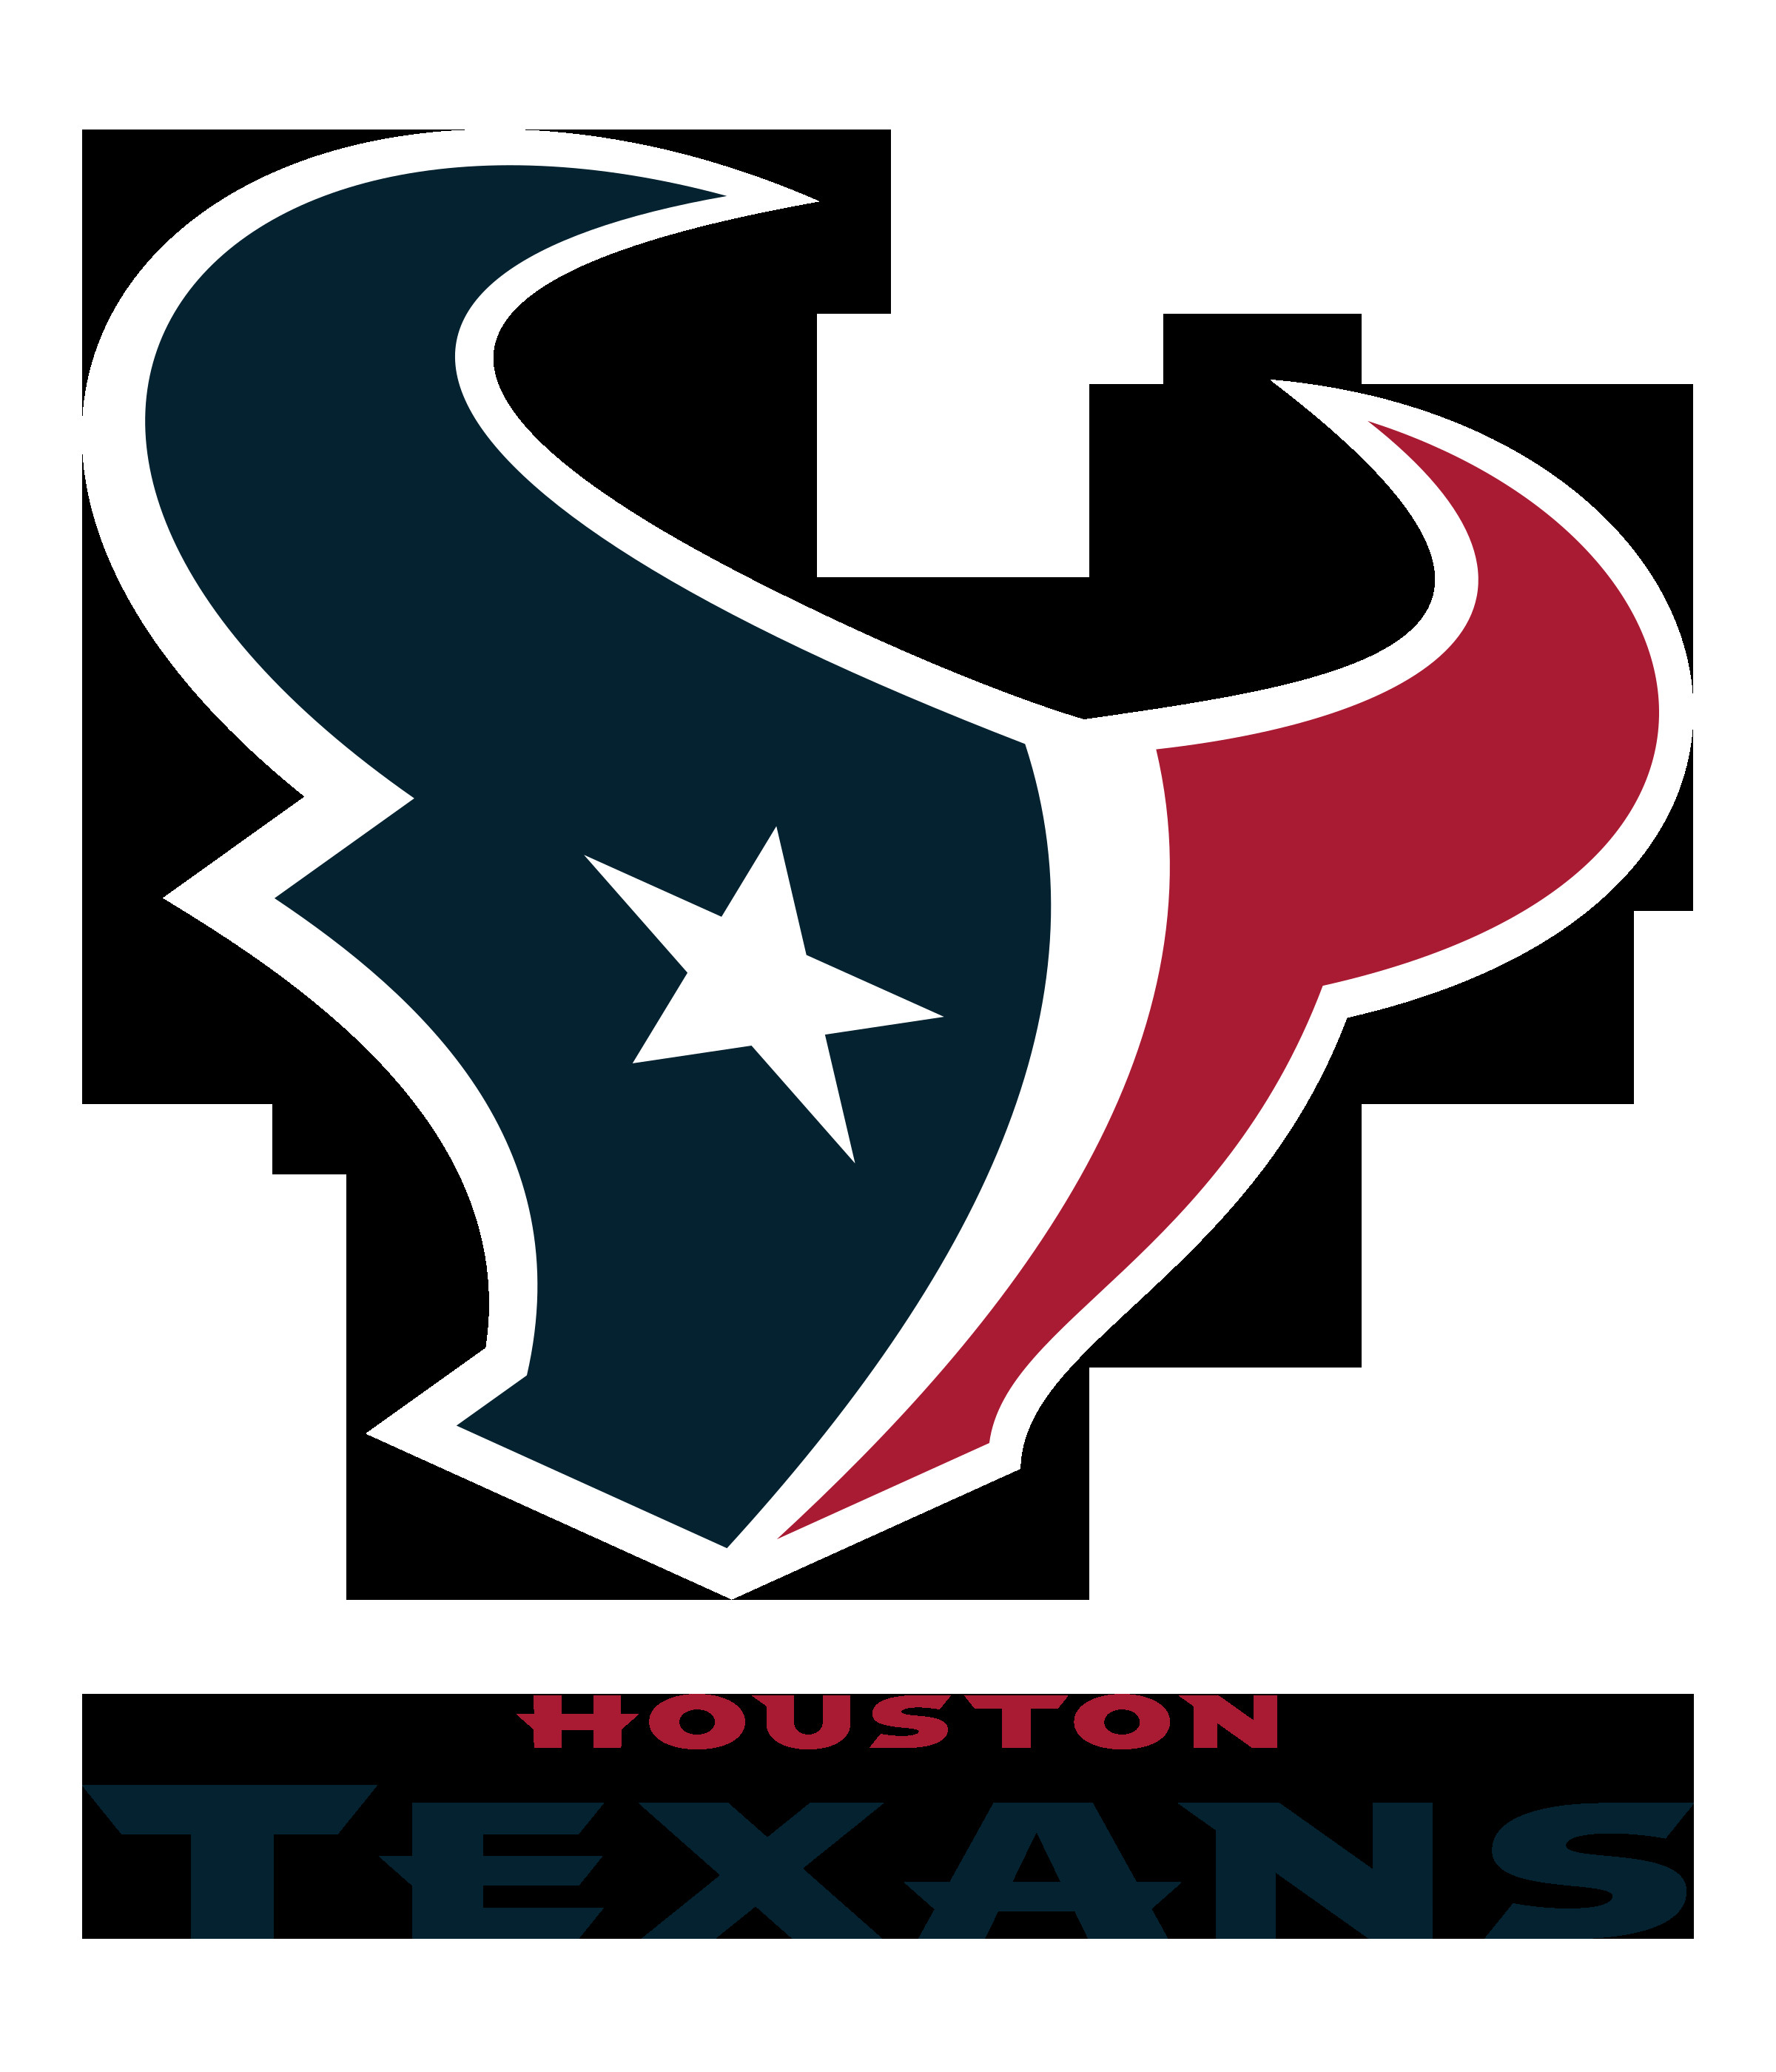 houston texans logo